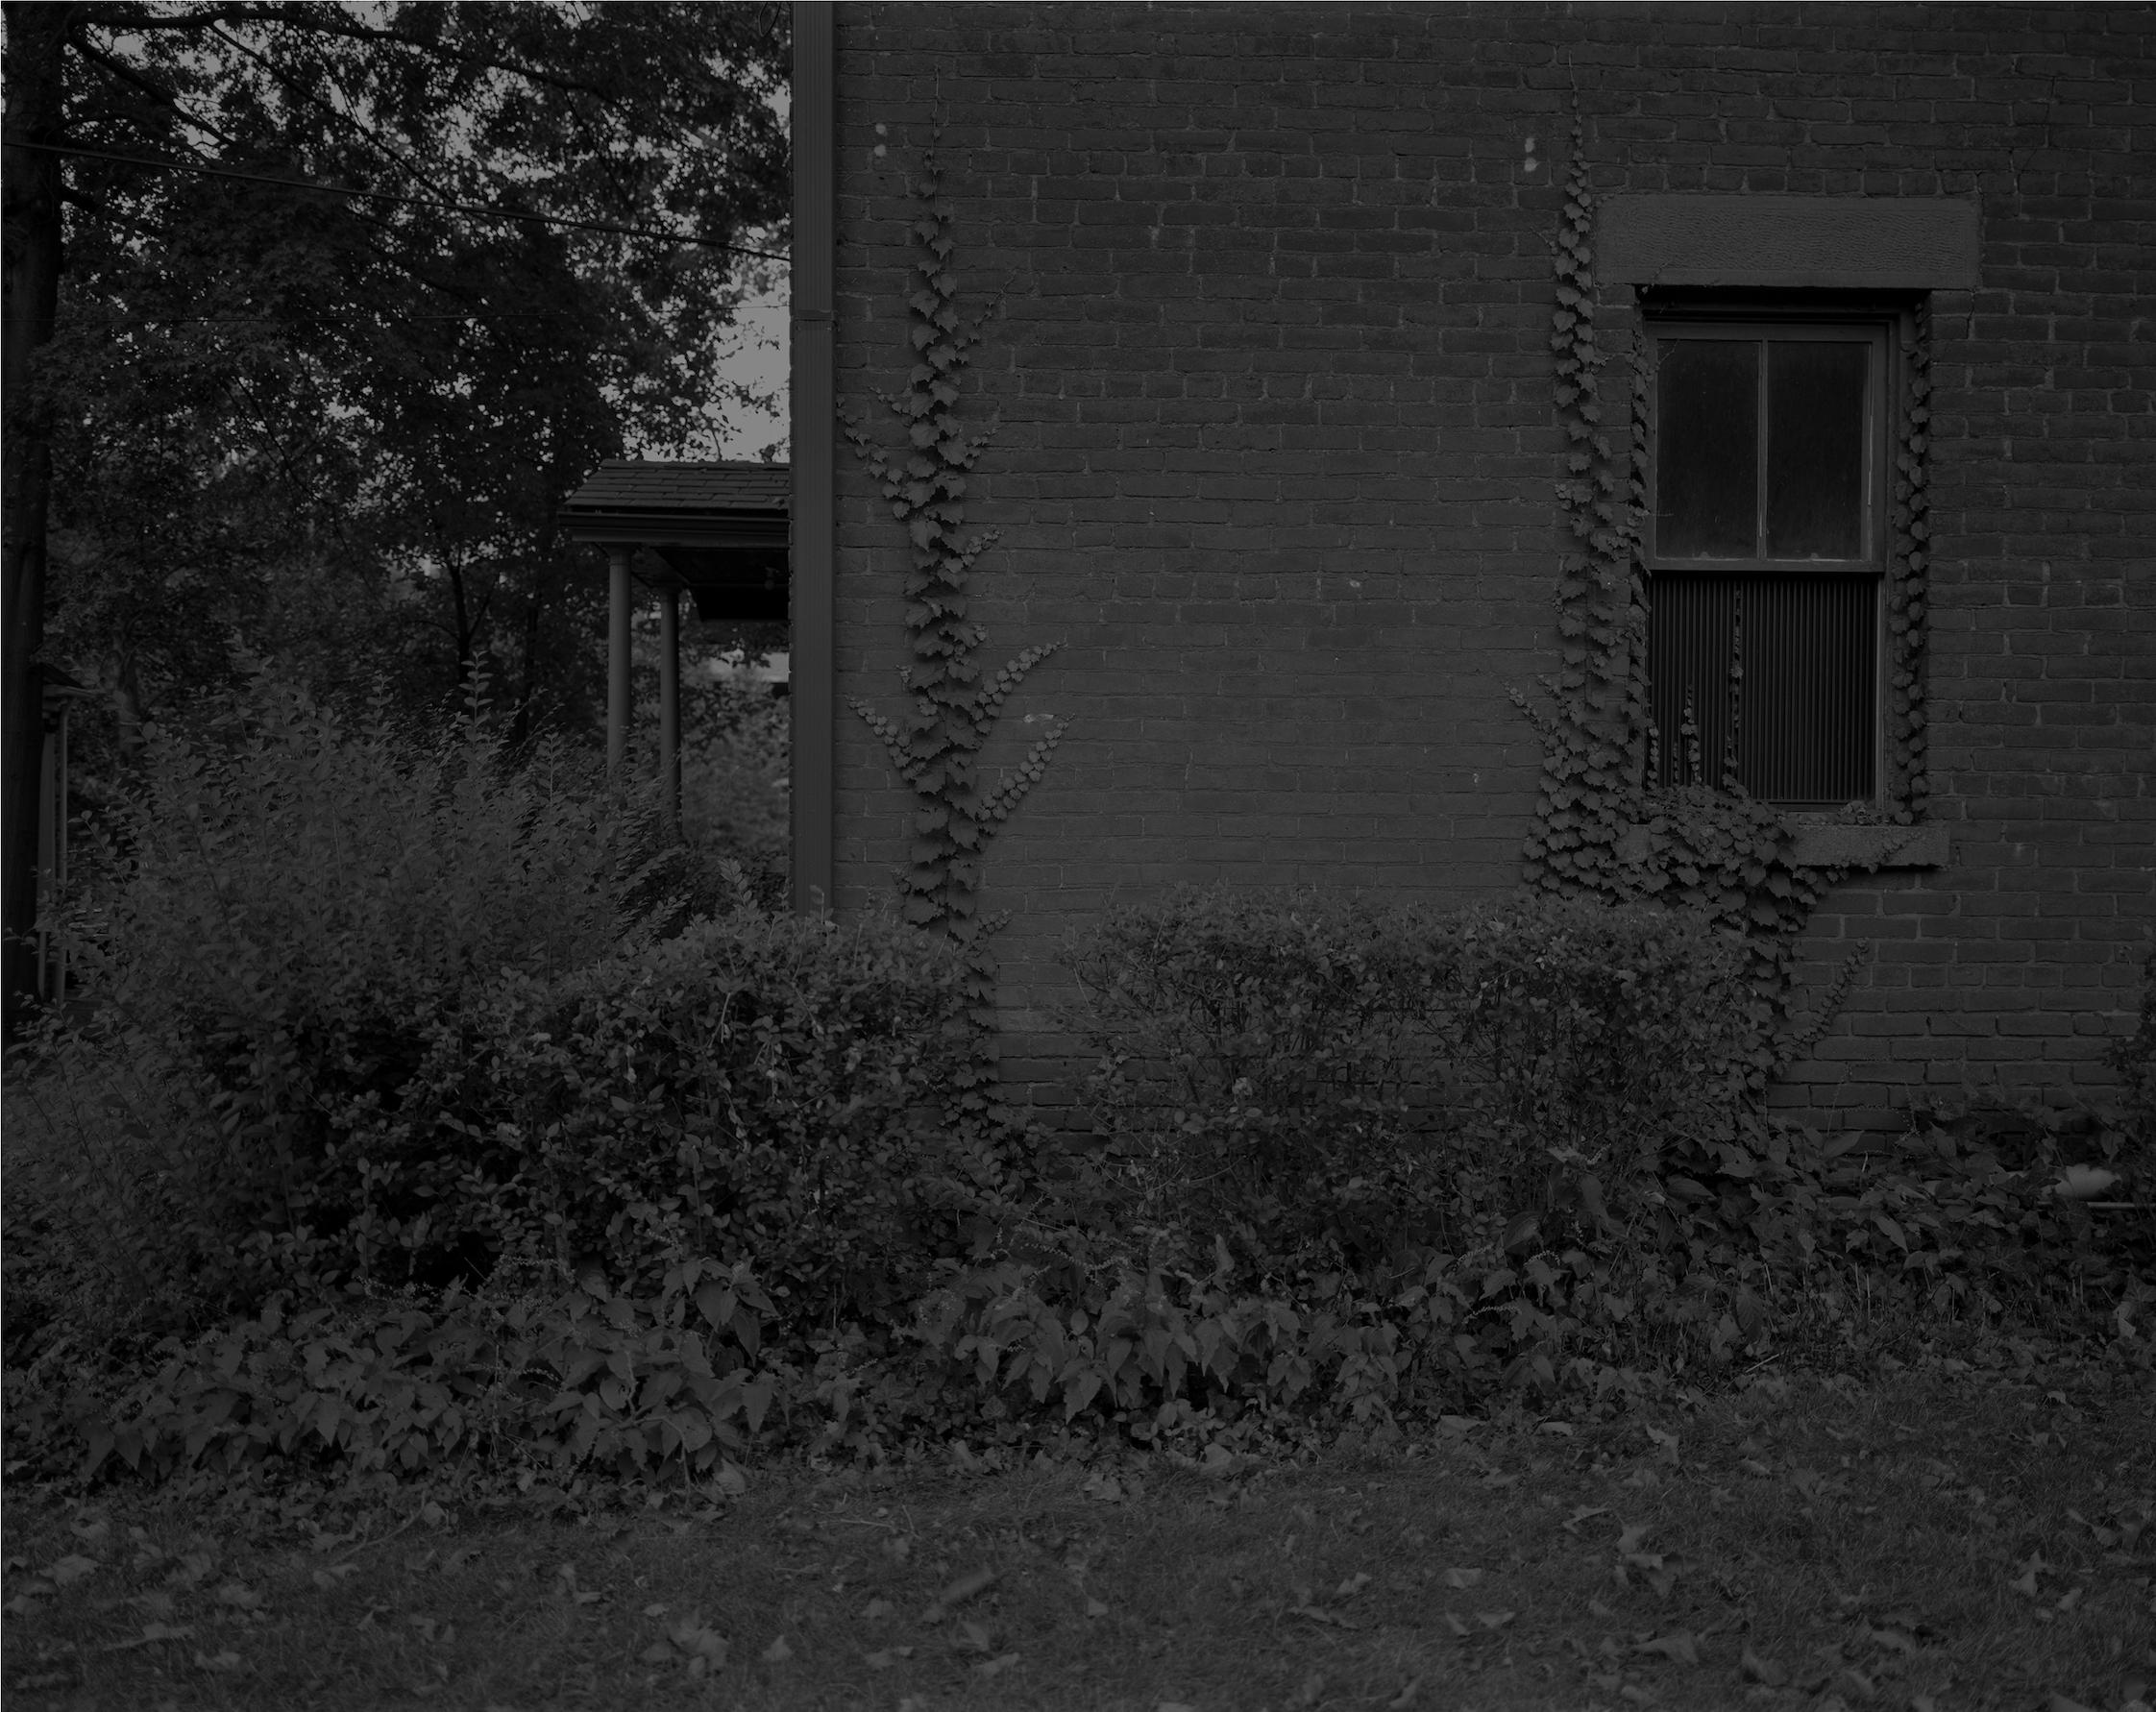 Untitled #3 (Cozad-Bates House) ; from the series  Night Coming Tenderly, Black,  2017. ©Dawoud Bey. Courtesy of Mary Boone Gallery, New York